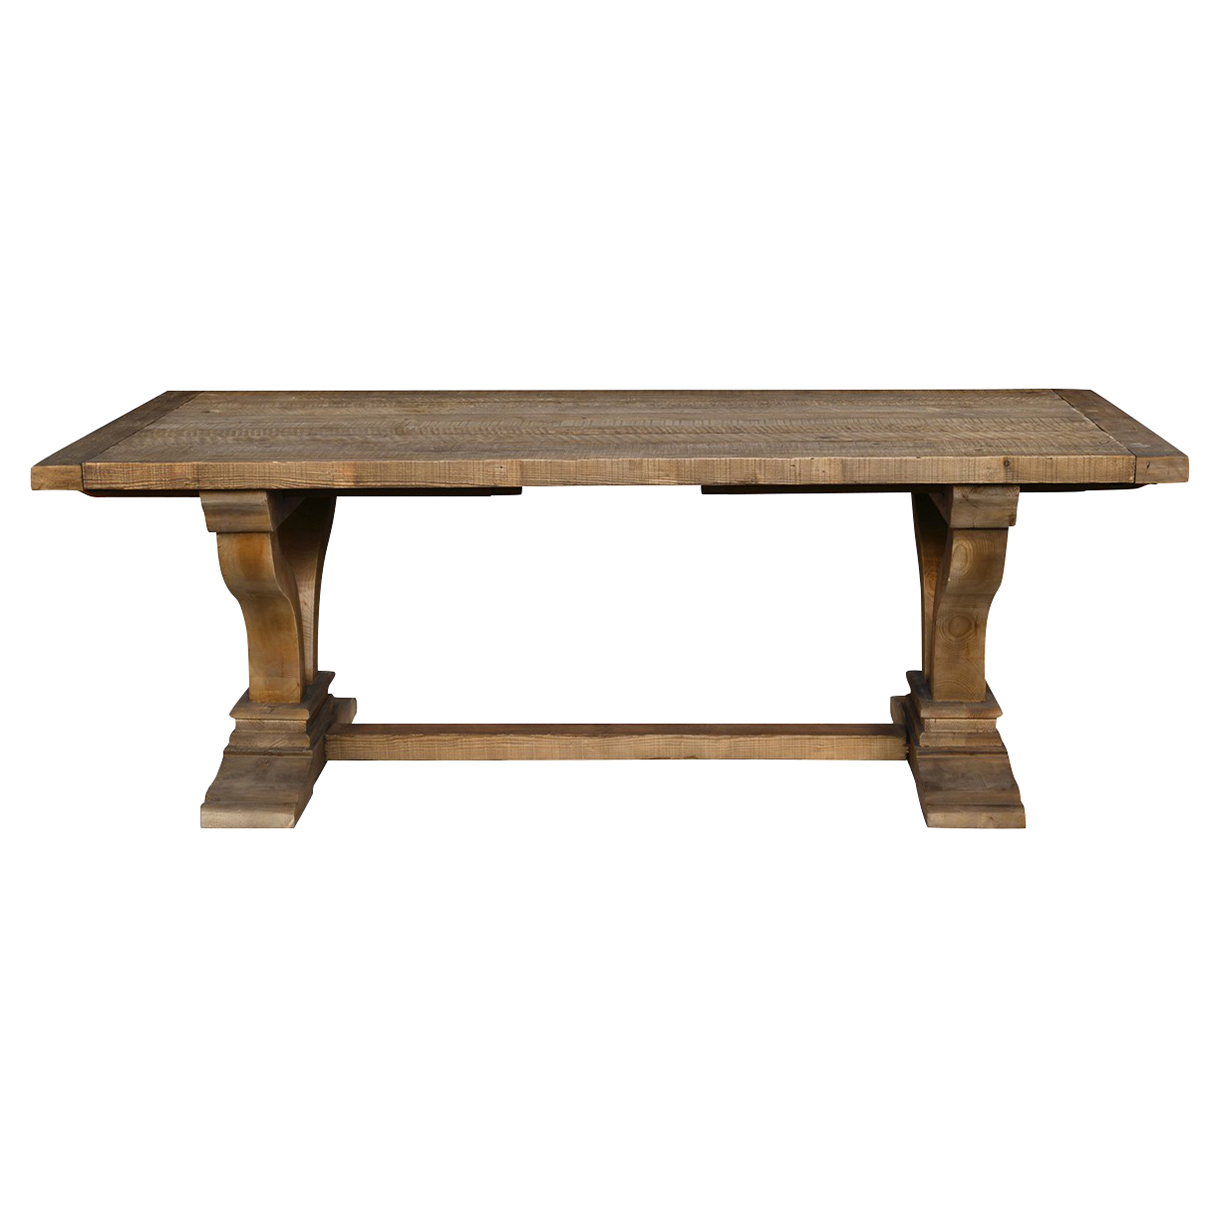 Sophia Rustic Lodge Rectangular Brown Distressed Pine Extendable Dining Table